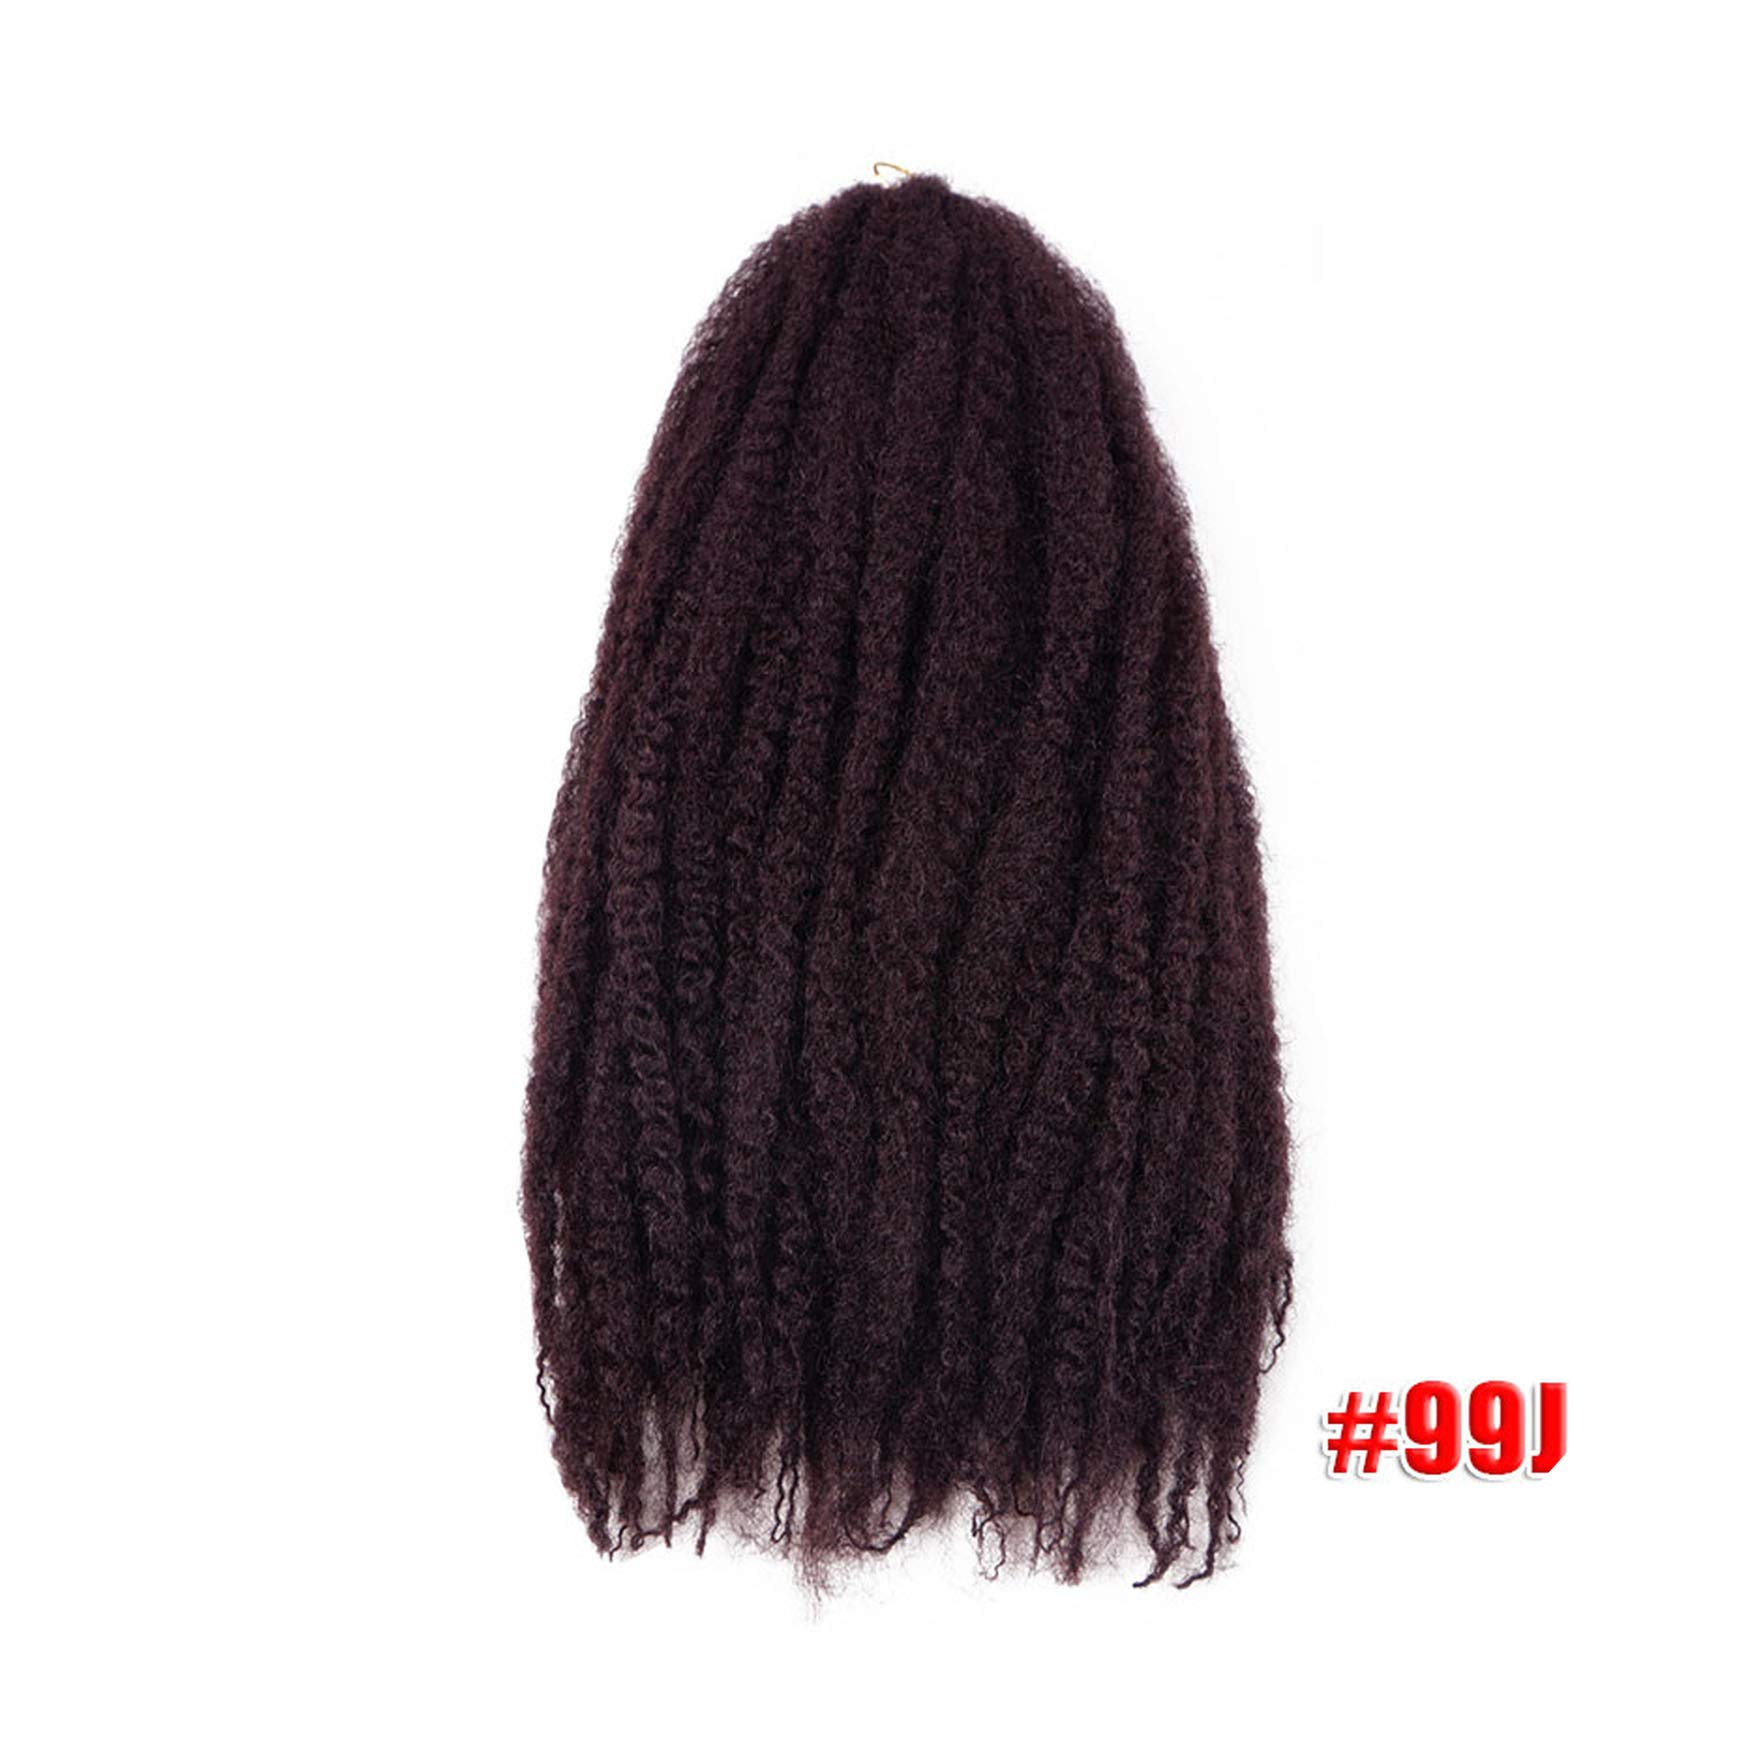 Afro Kinky Marley Braids Hair 18inch Soft Jumbo Crochet Braids Hair Extensions Synthetic Red Long Ombre Marley Twist Hair,#99J,18inches,5Pcs/Lot by Yinshizhu21